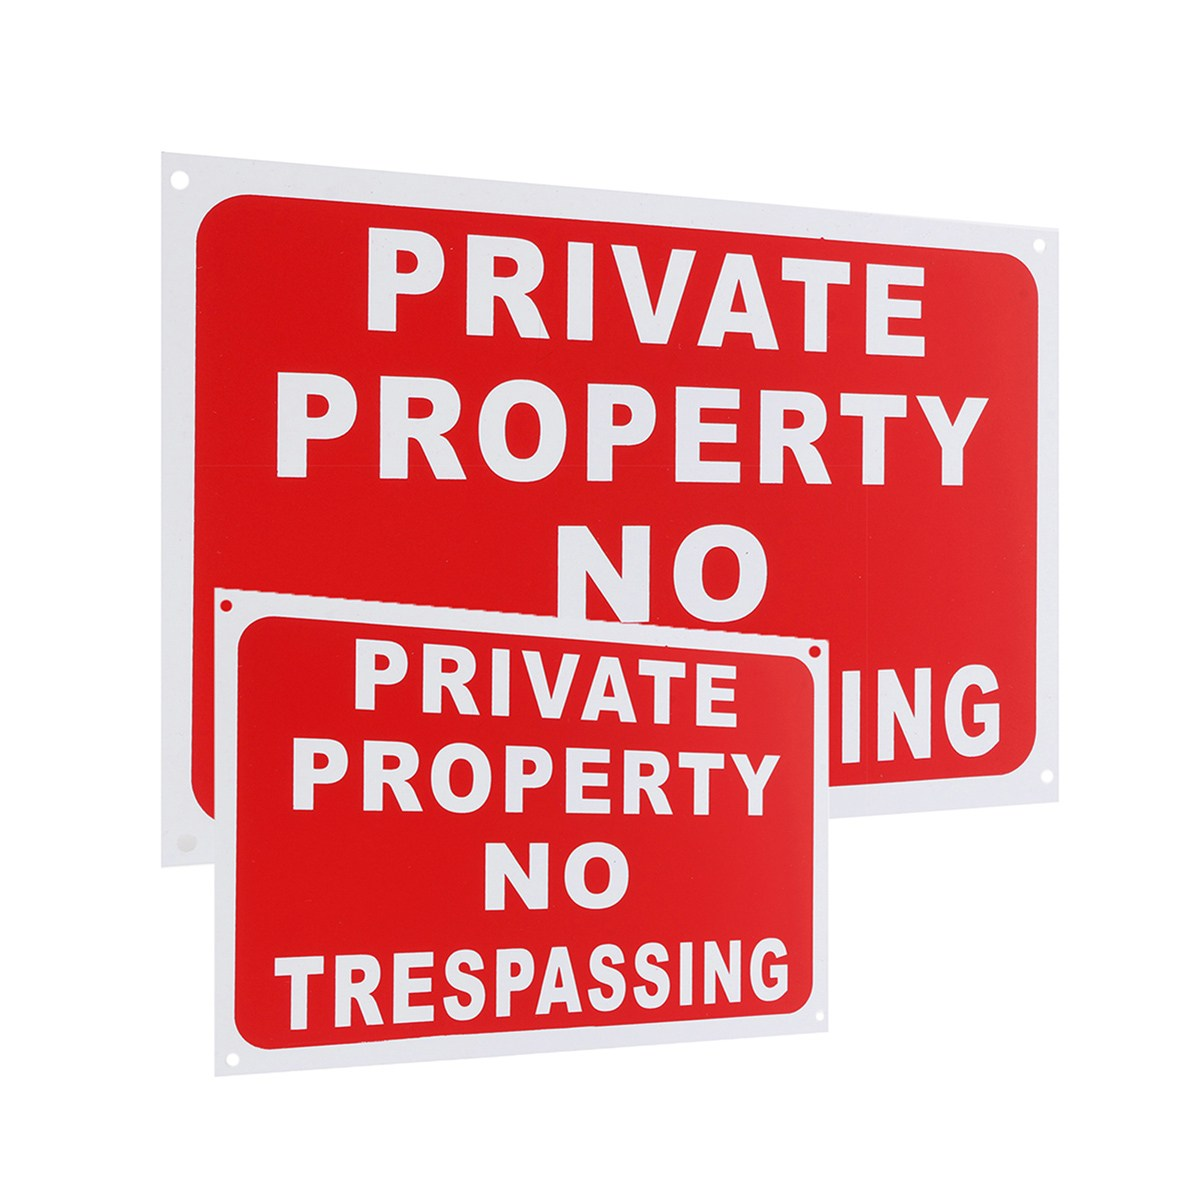 NEW Private Property No Trespassing Plastic Stickers Security Signs Decal 2 Sizes Workplace Safety Warning safurance no soliciting no exceptions front door security sign waterproof 11 x7 28x18cm workplace safety